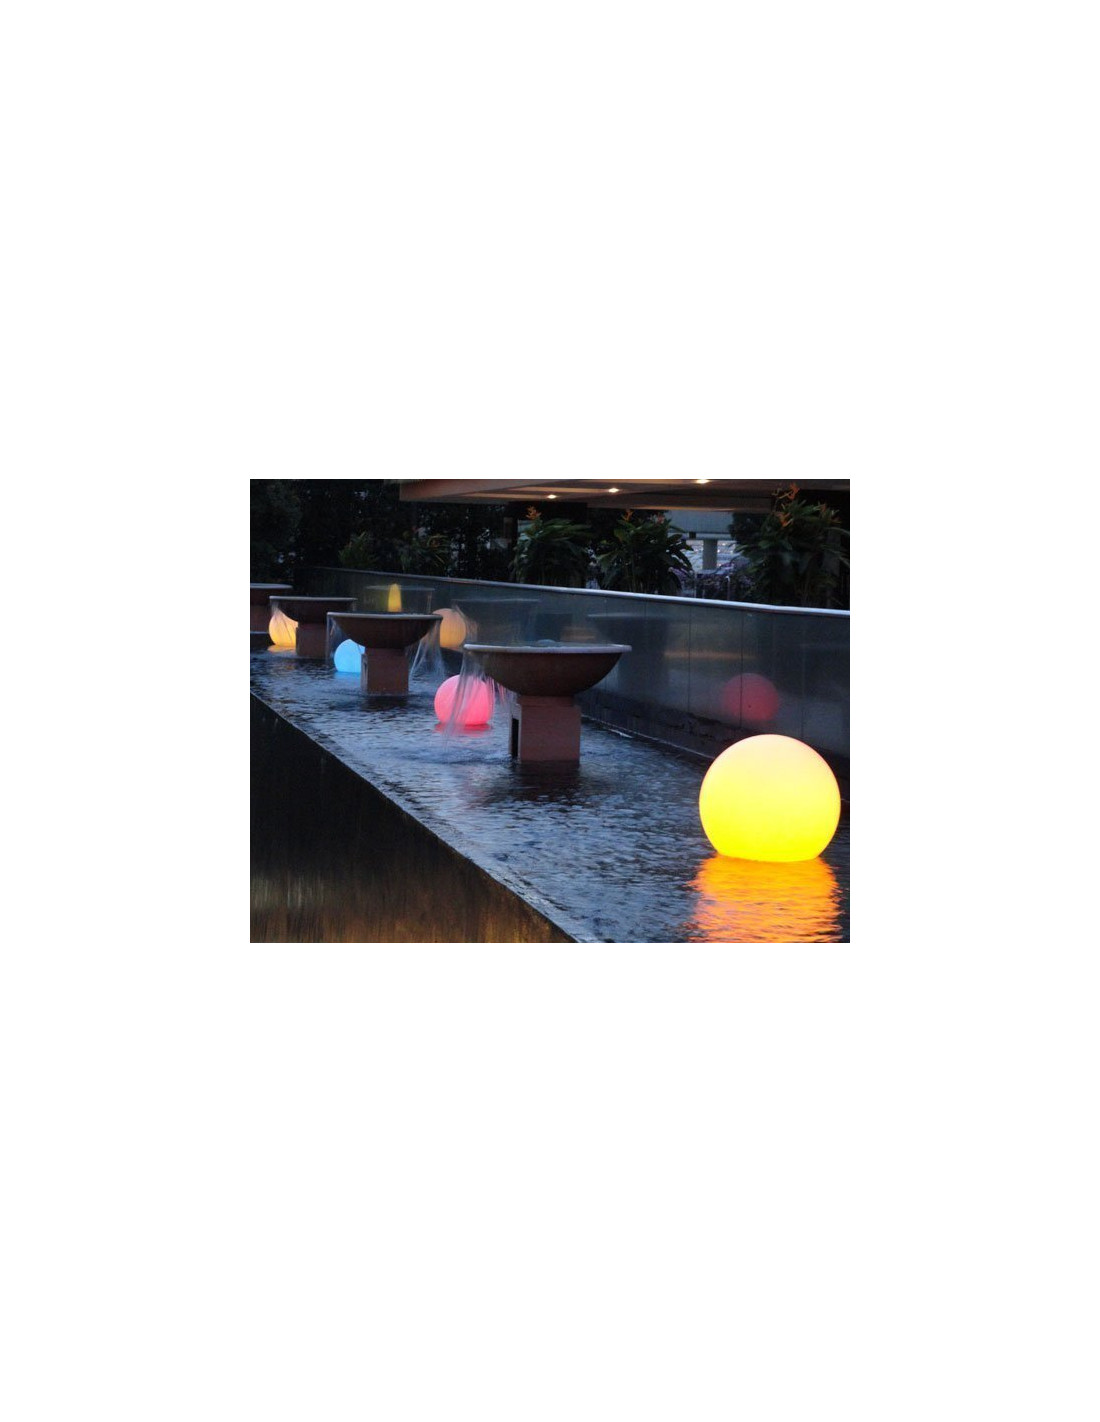 Boule led piscine gallery of lampe with boule led piscine - Boules lumineuses piscine ...